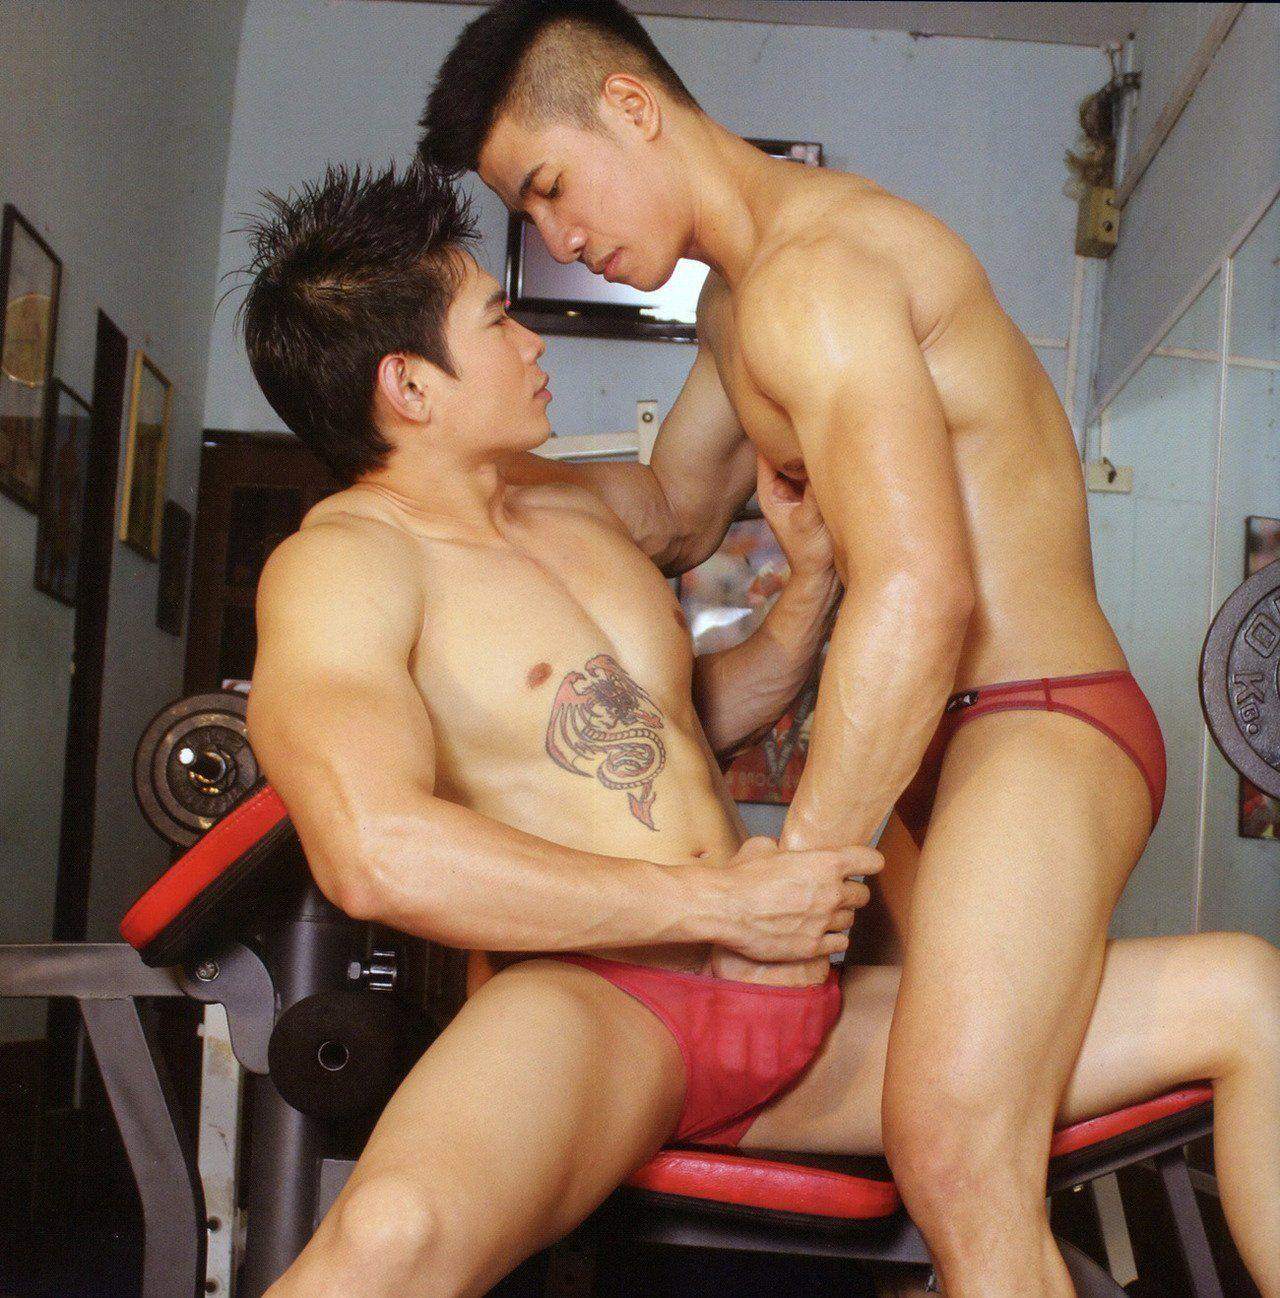 gallery free Asian photo boy